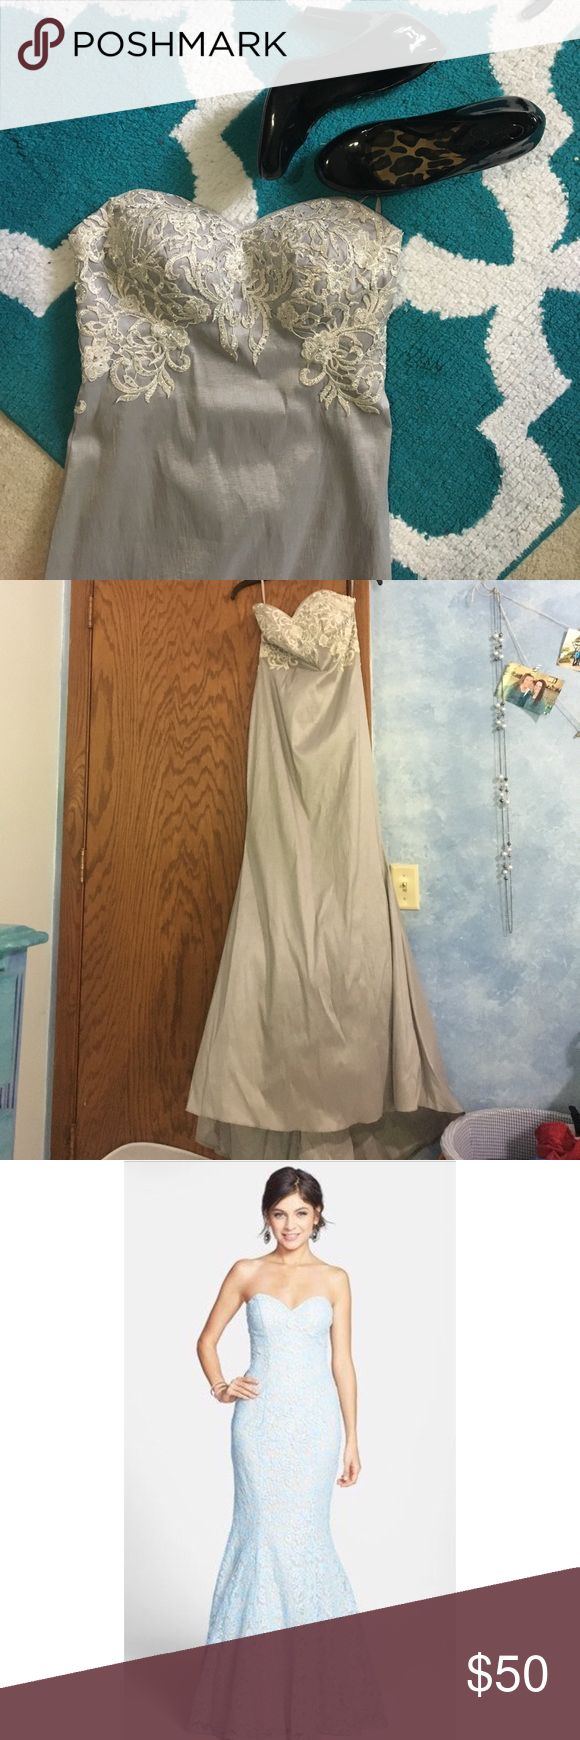 Nordstrom Prom Dress Silver mermaid style prom dress, perfect condition. Stock photo shows exact dress shape and style. Nordstrom Dresses Prom